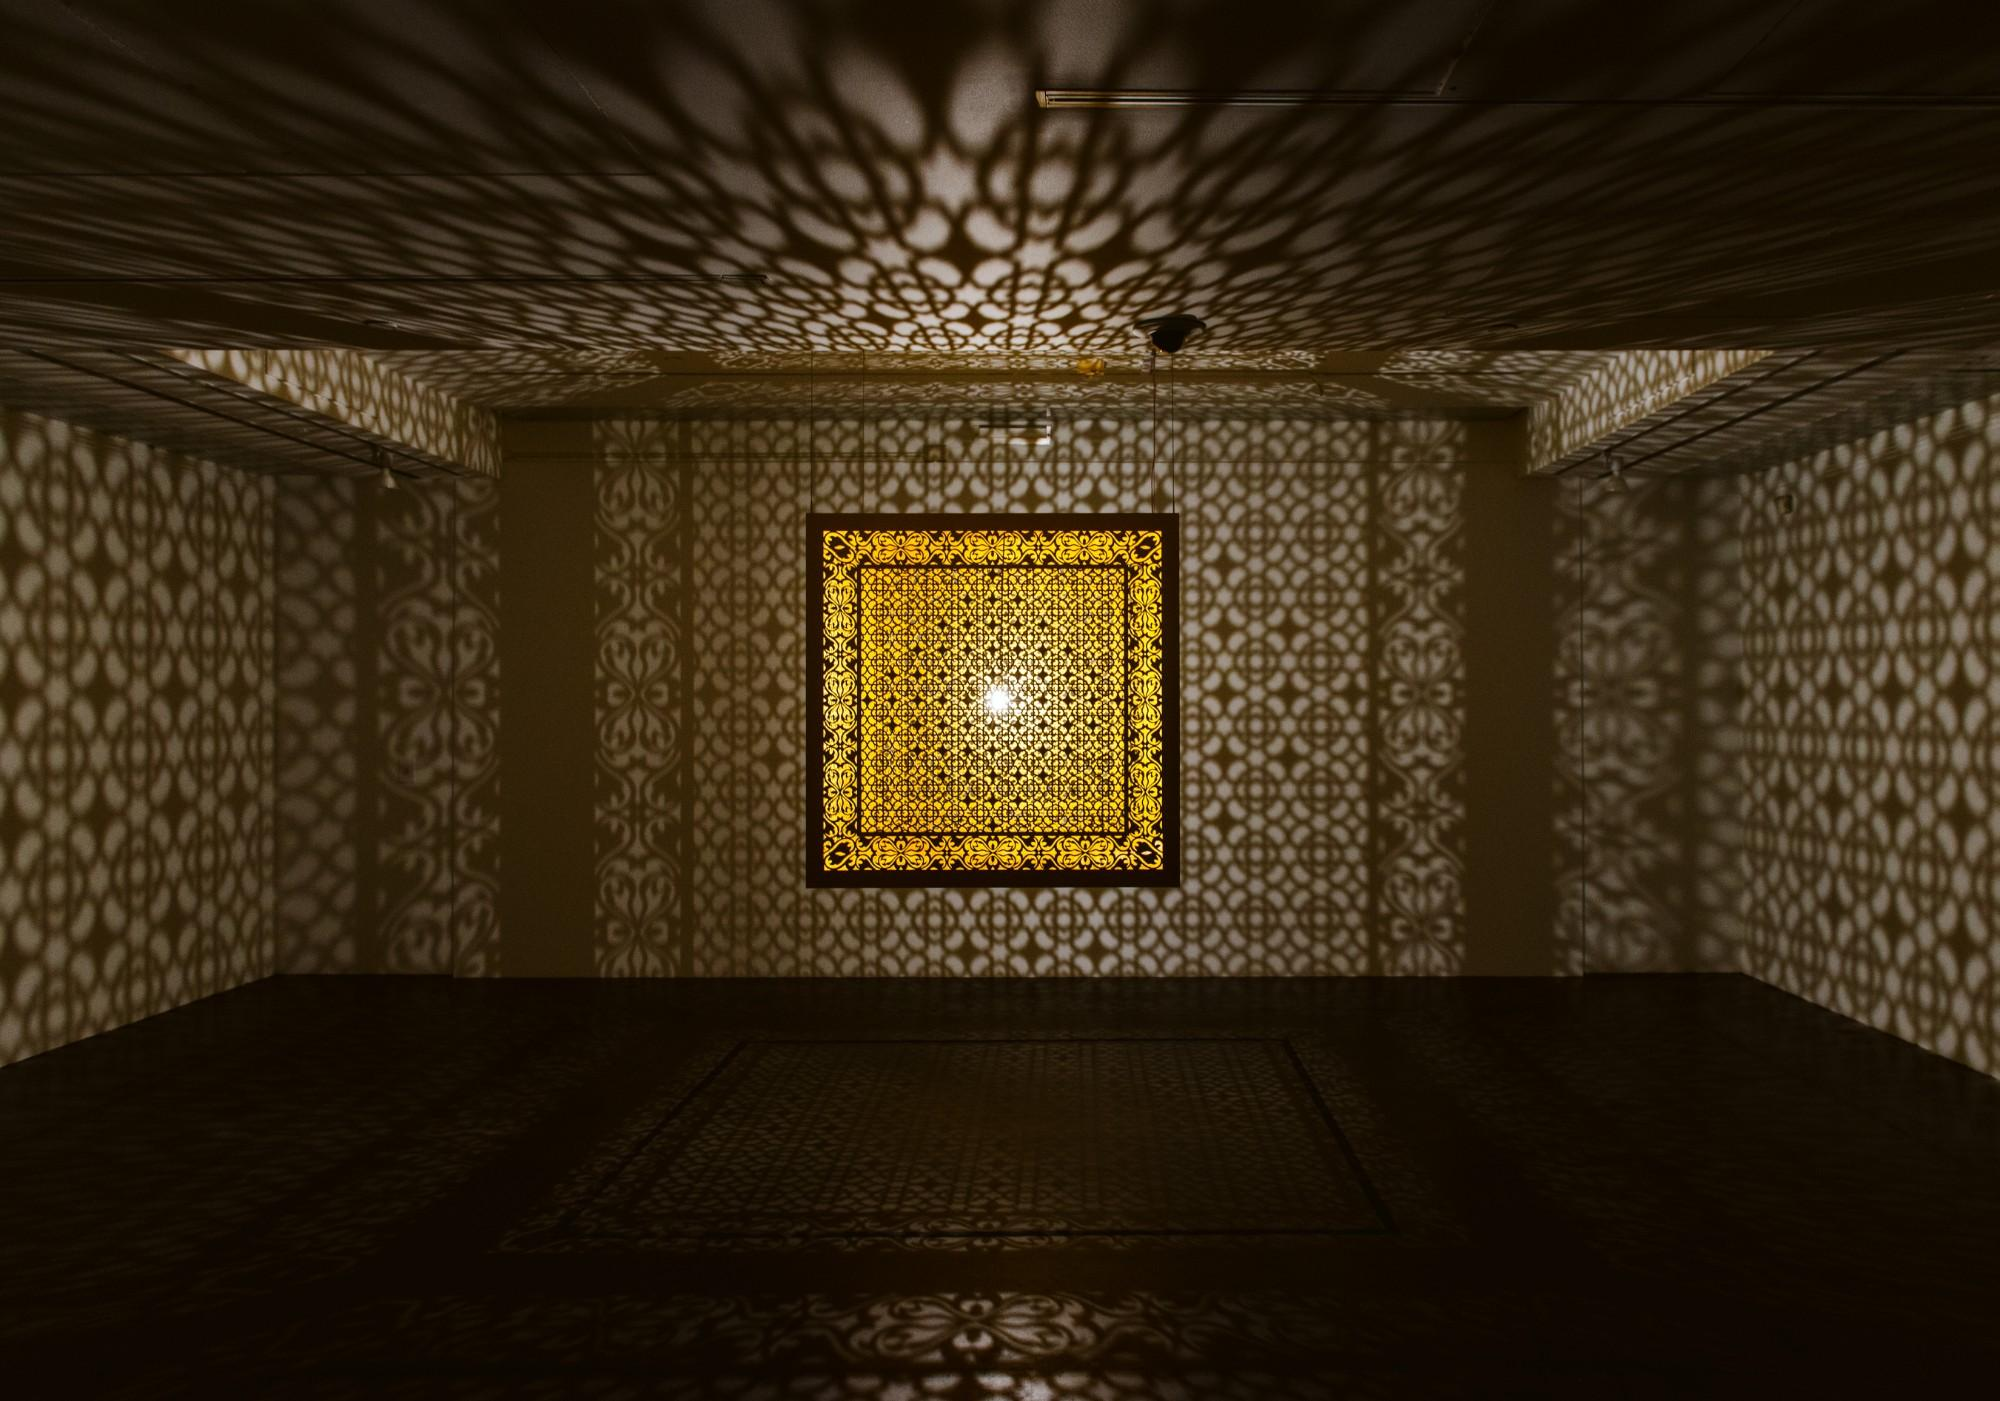 Anila Quayyum Agha, Hidden Diamond - Saffron, 2019, BCA Center.